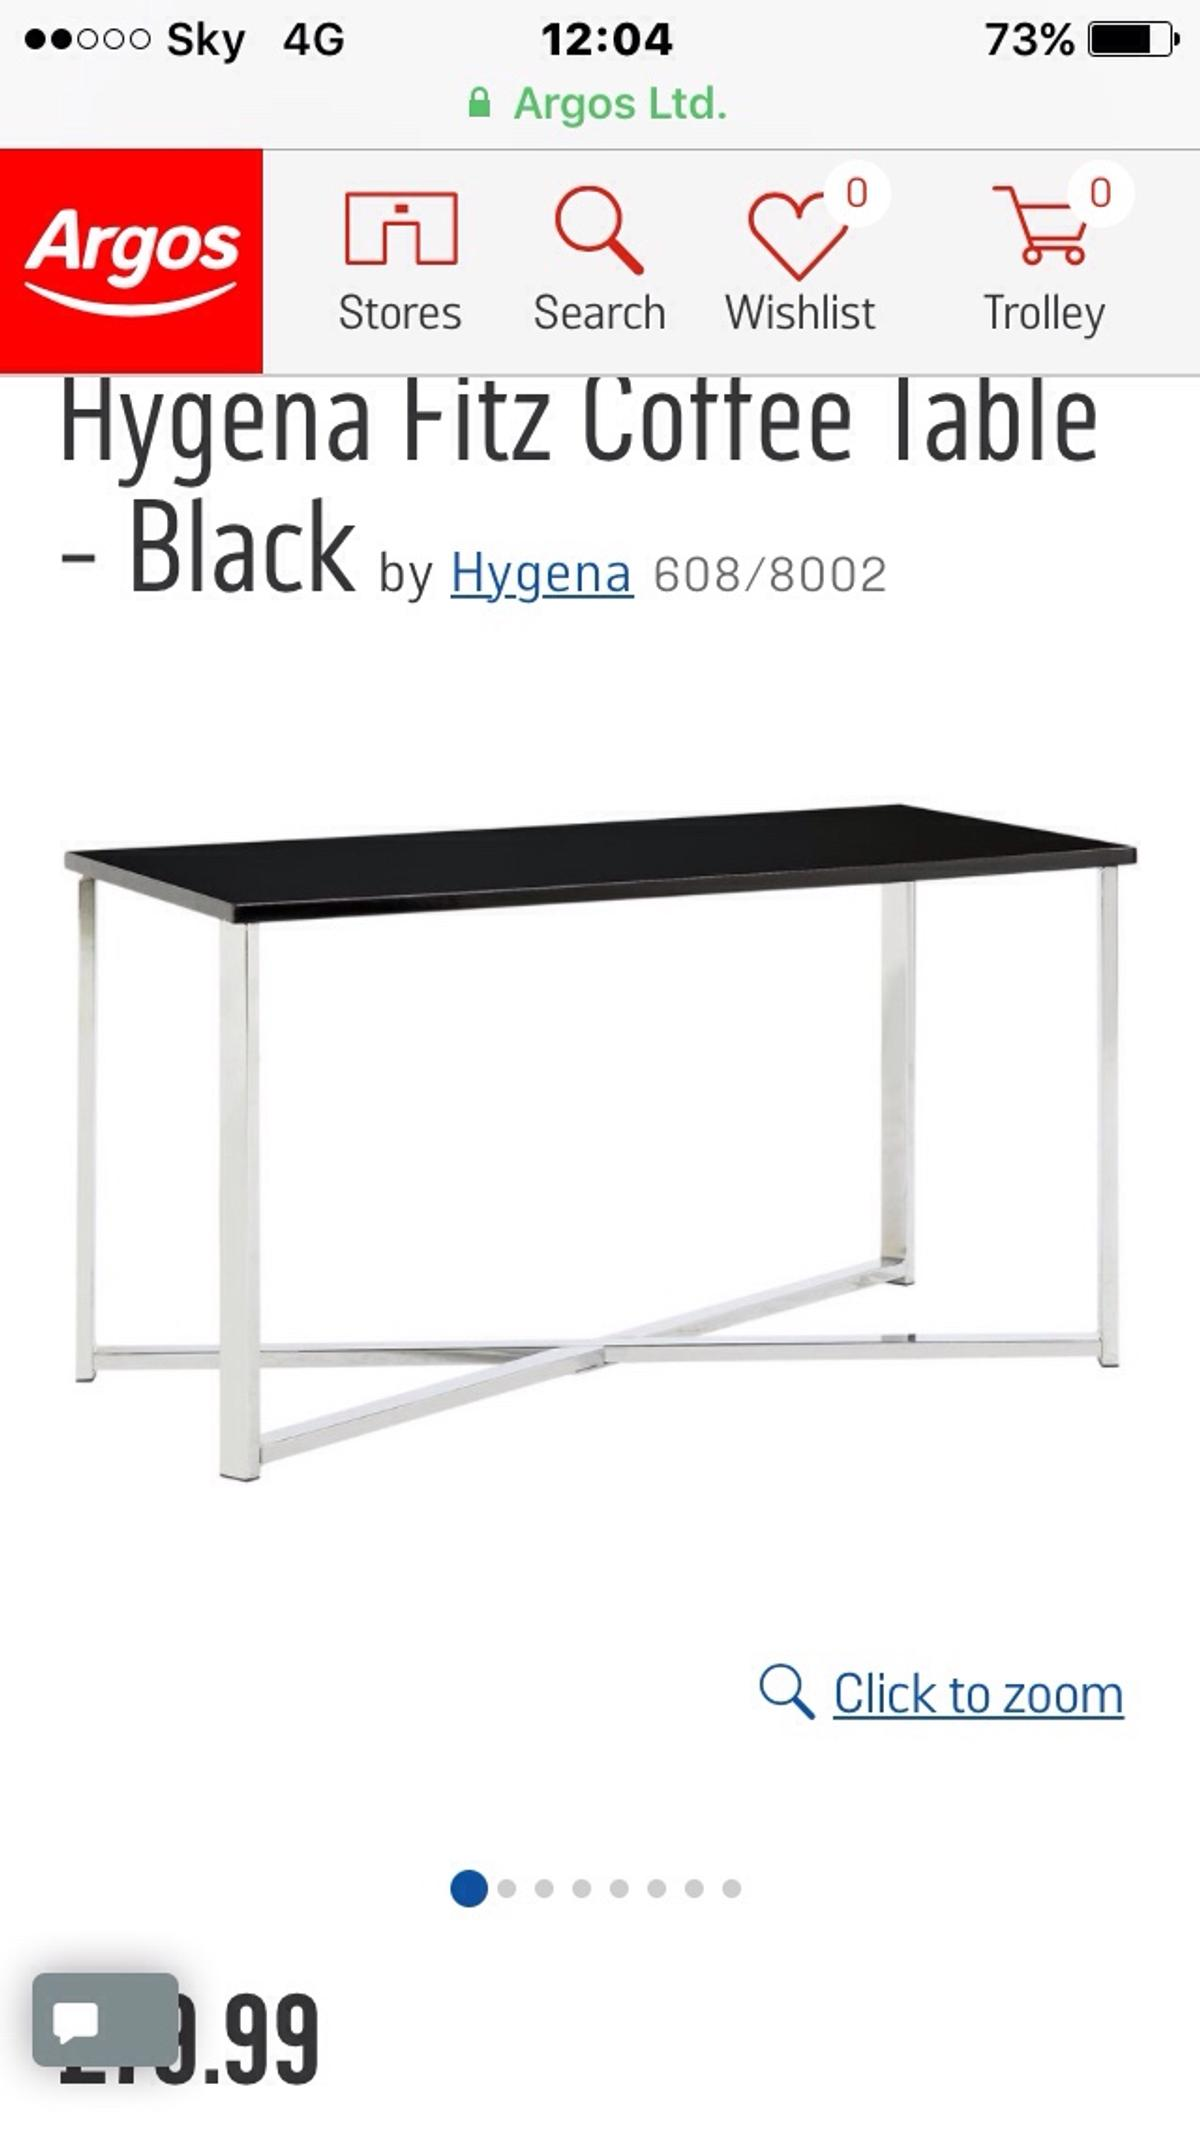 Black Coffee Table In Stratford On Avon For 4000 For Sale